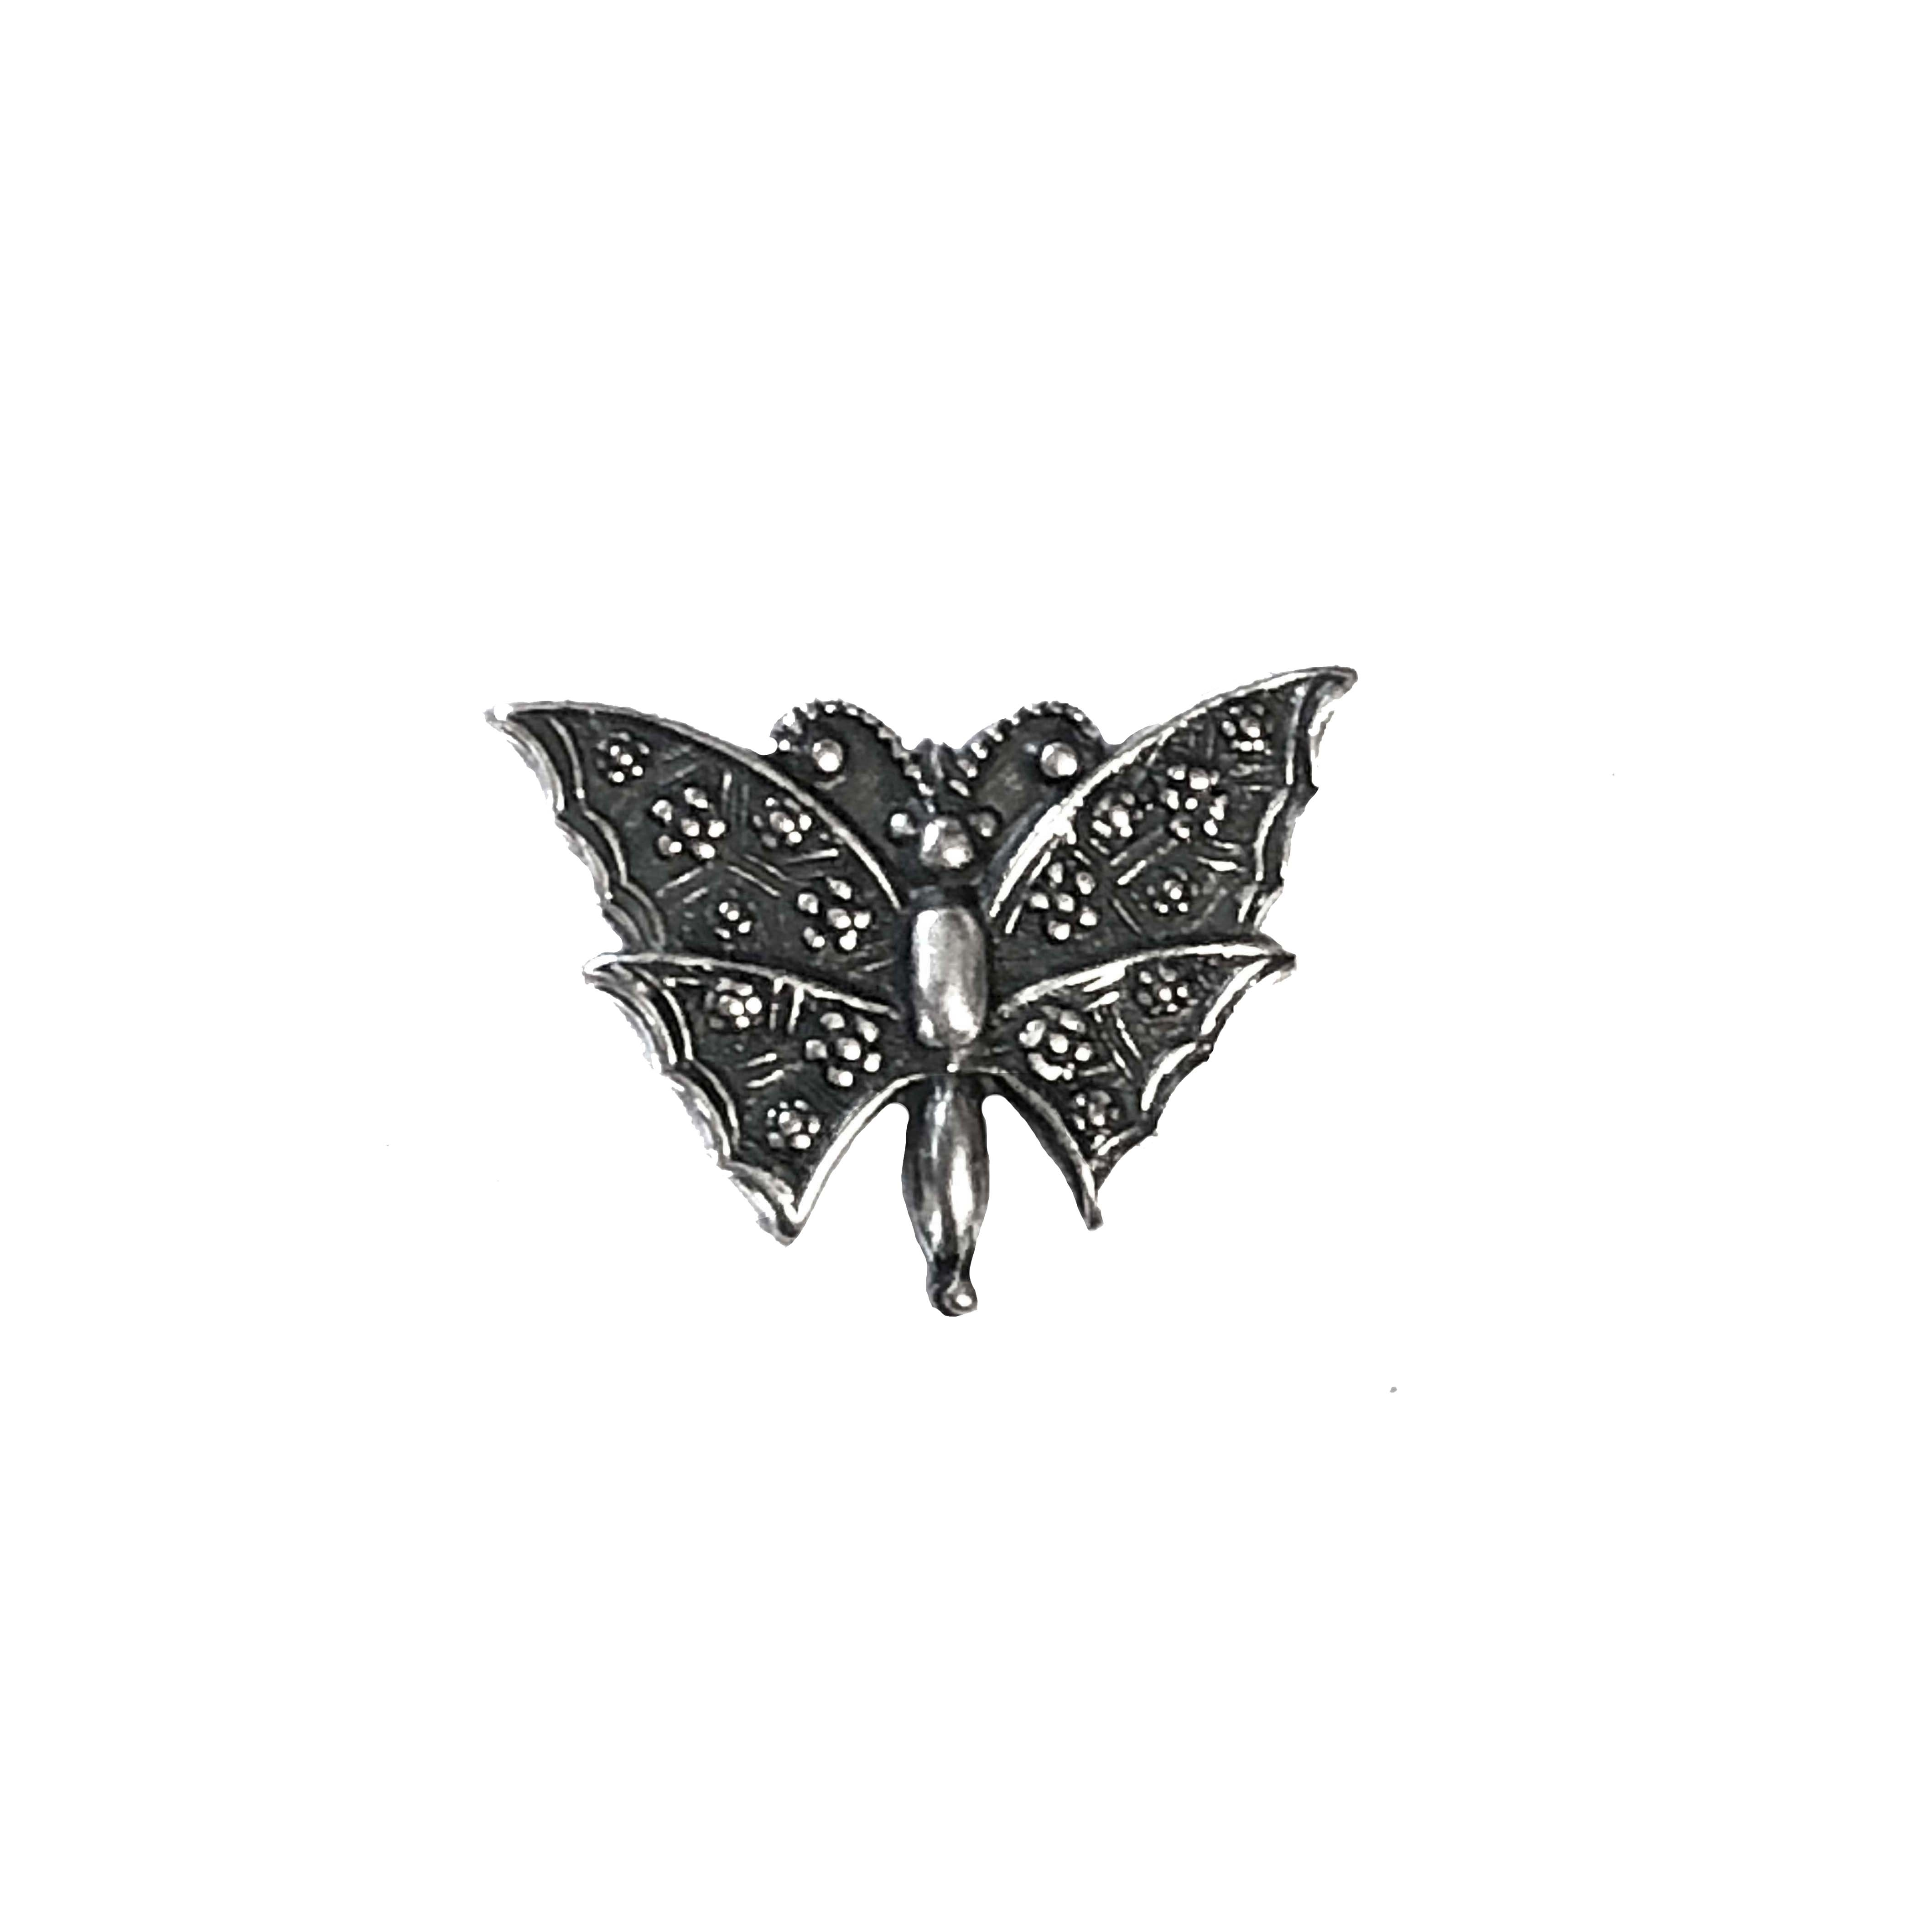 butterfly stampings, antique silver, 16 x 19mm, butterflies, butterfly, silverware silverplate, embellishment, Bsue Boutiques, jewelry supplies, animals, critters, insects, nature